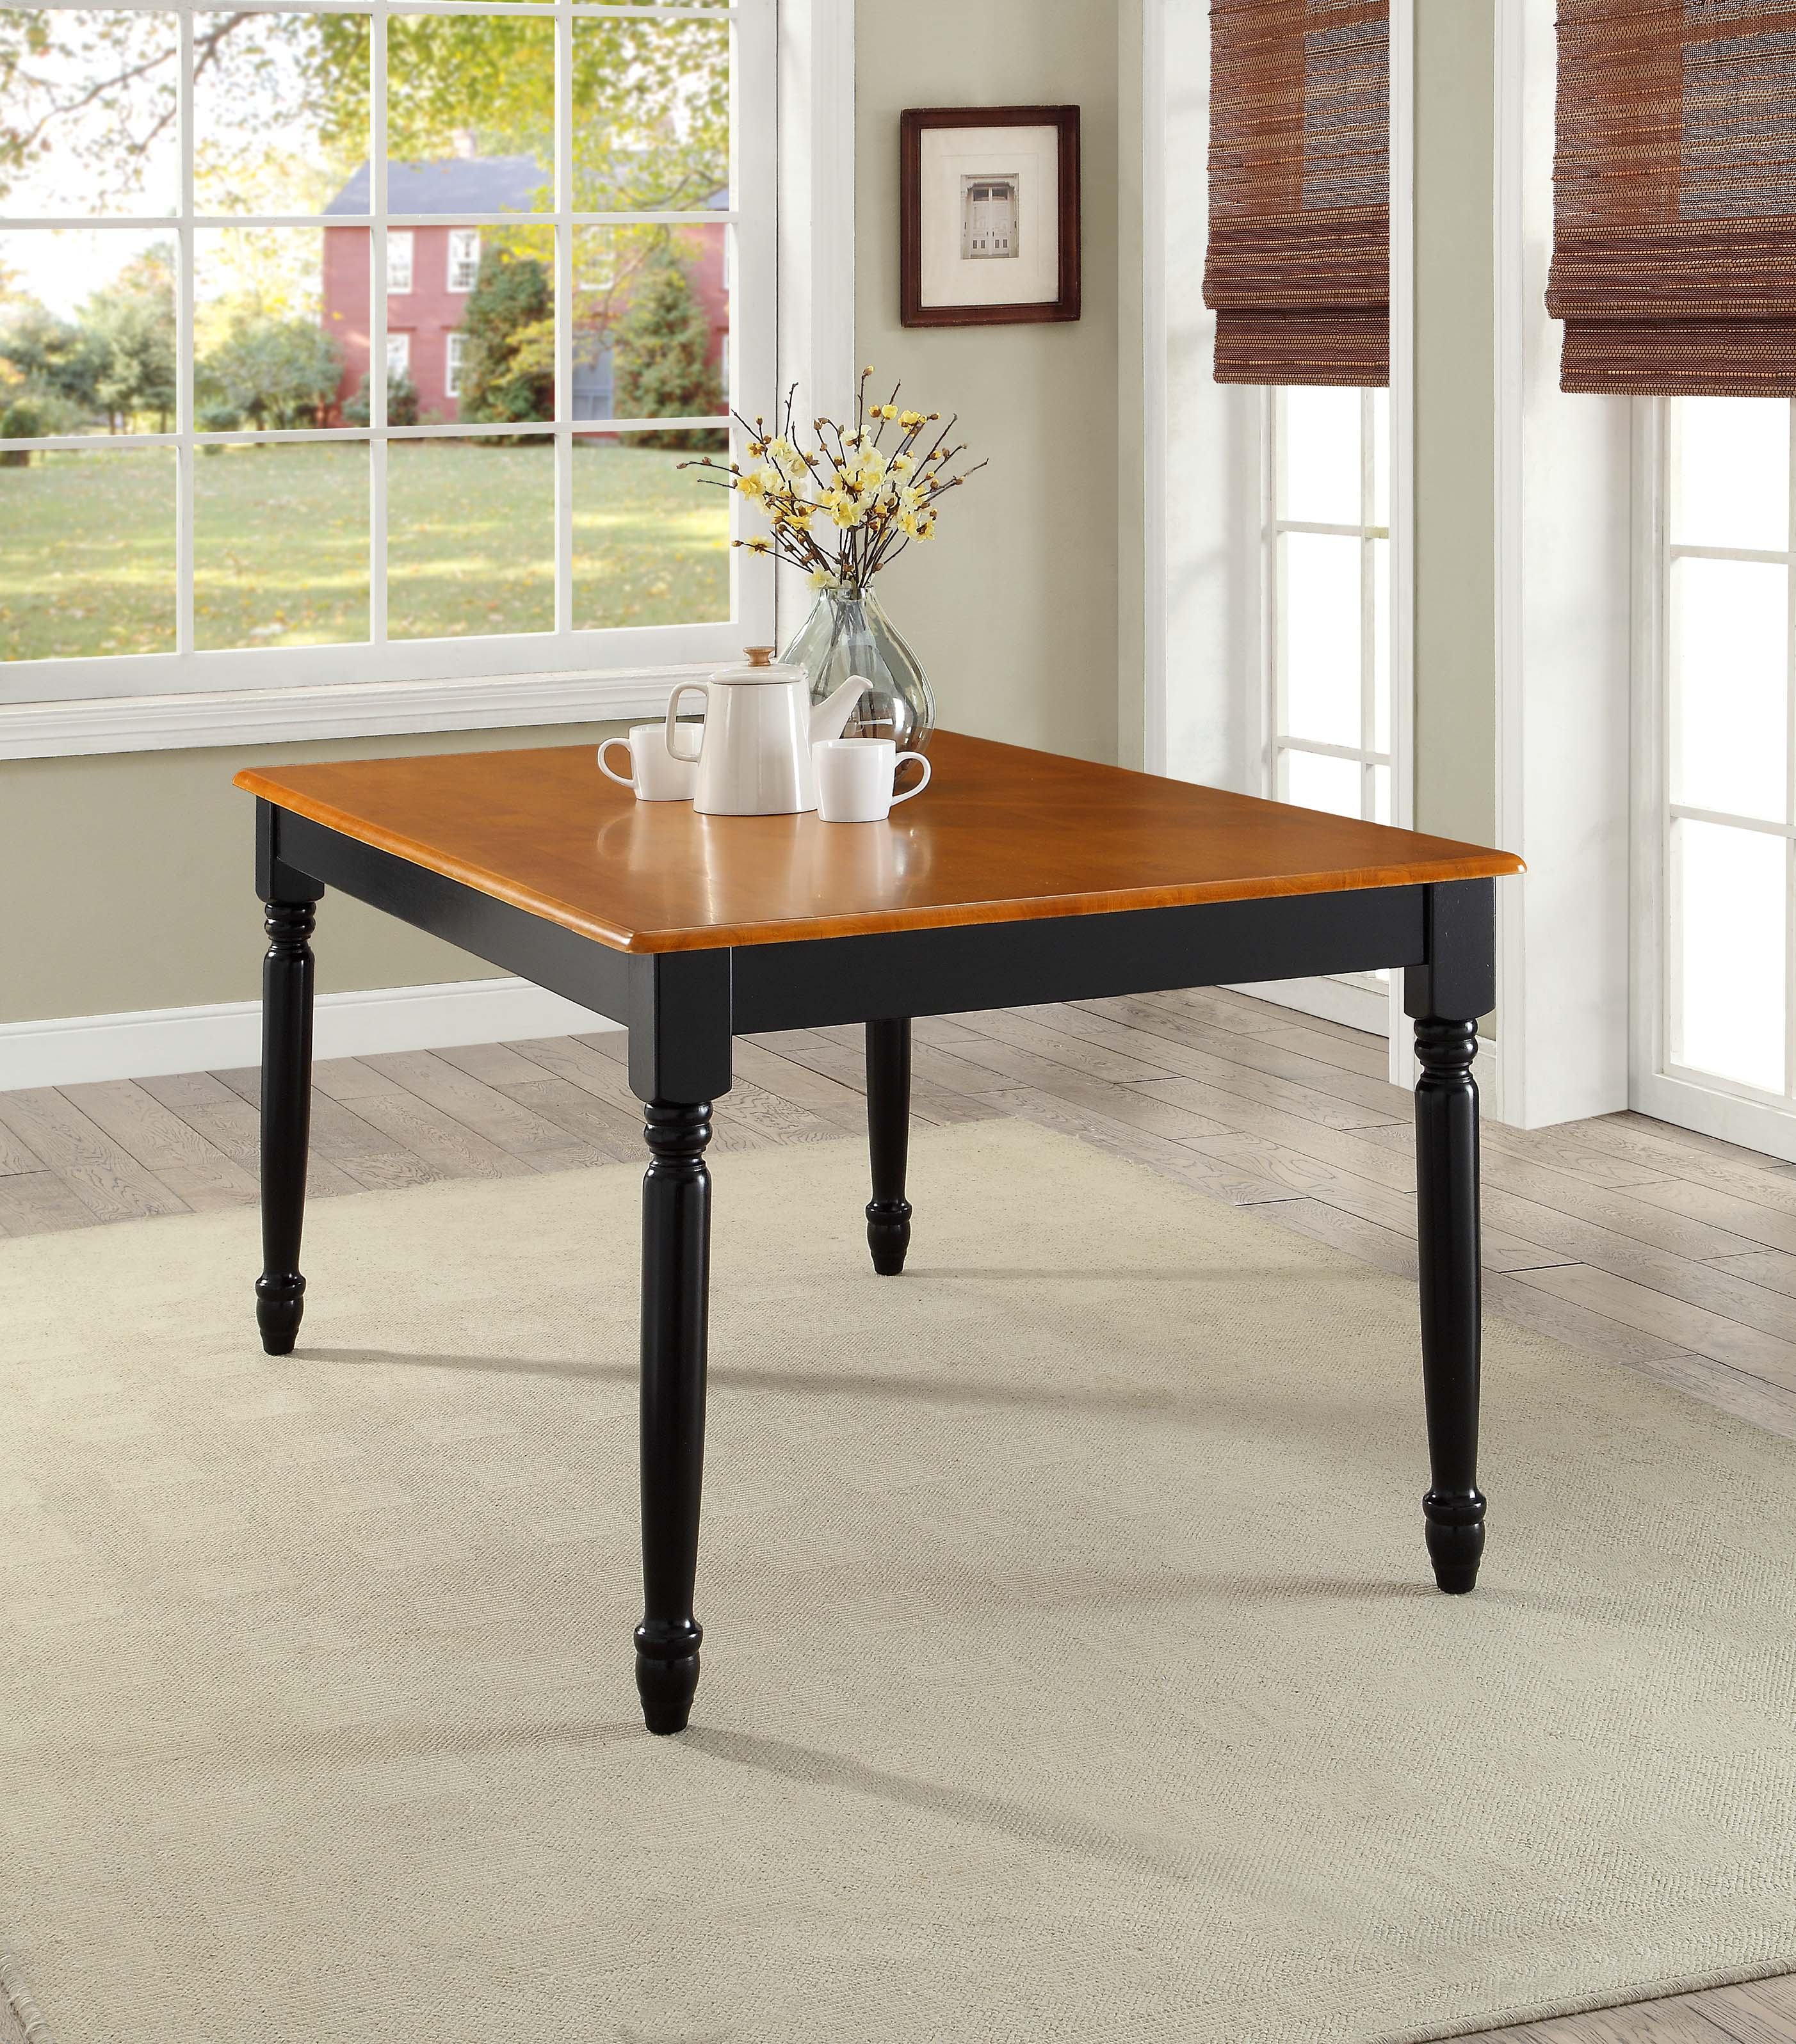 better homes and gardens autumn lane farmhouse dining table black room furniture oak mercer accent vintage outdoor sydney end stands for living diy twin frame target brown leather